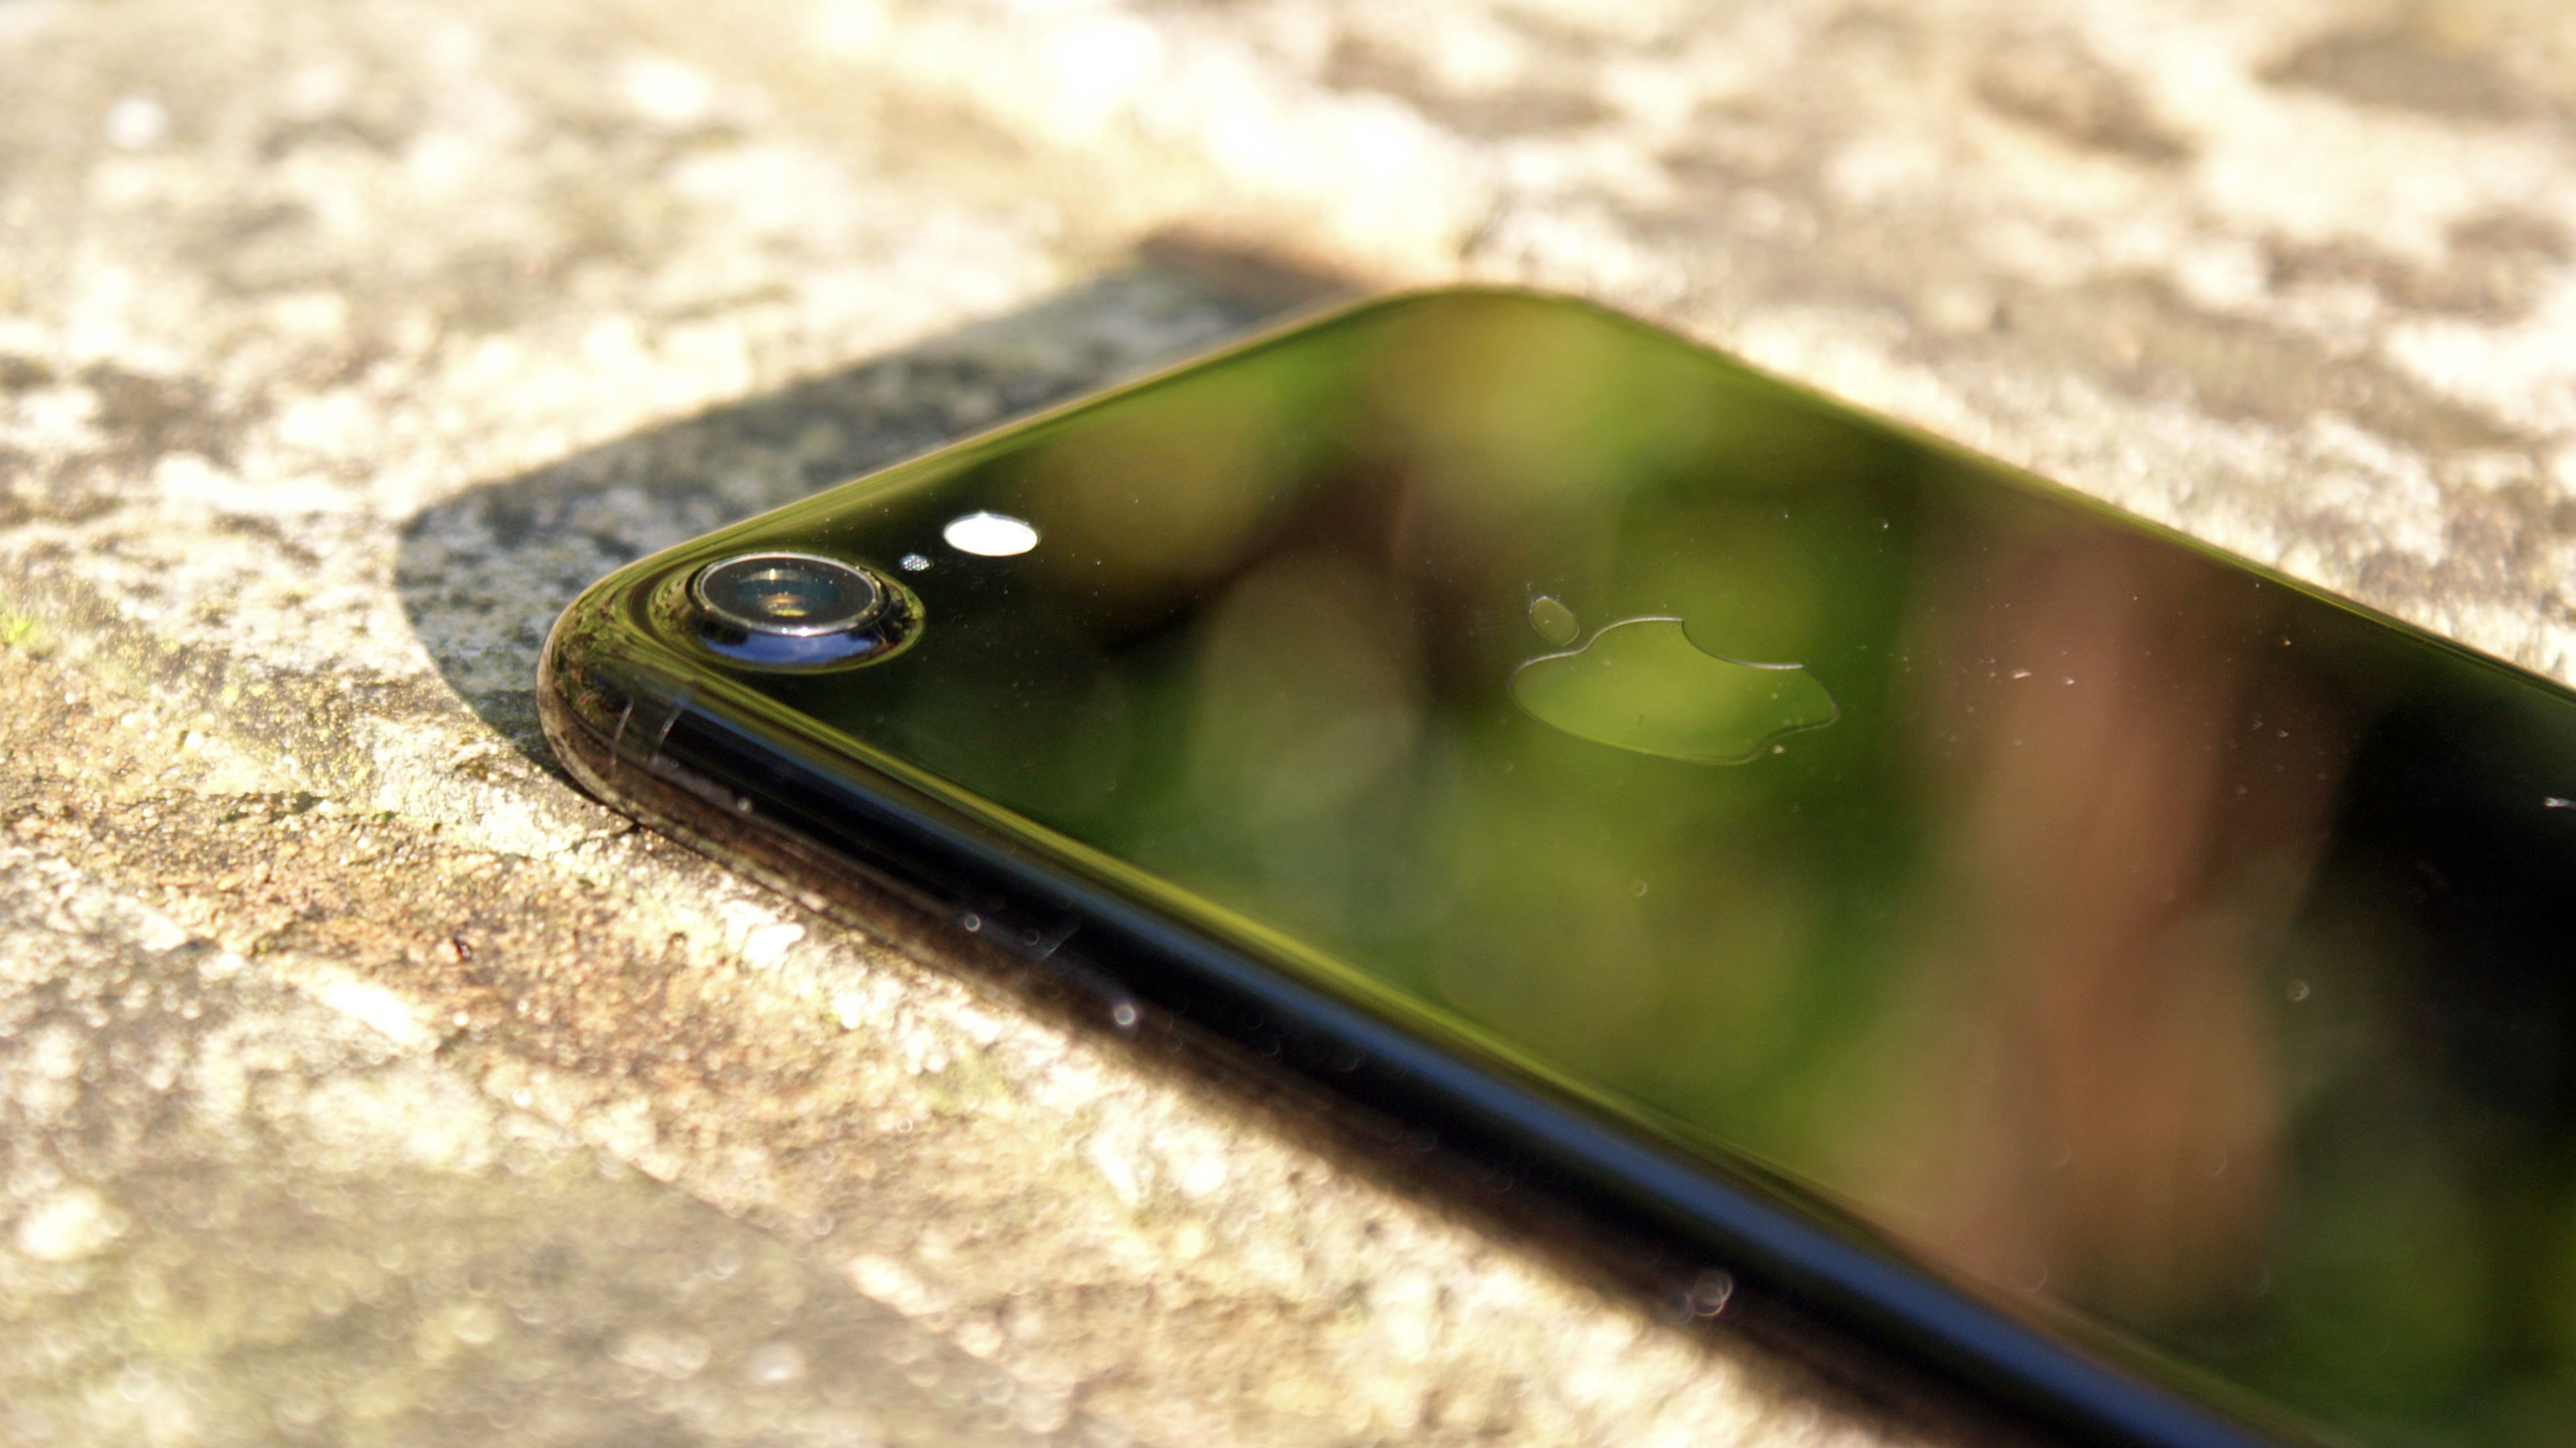 The iPhone 8 could have a smart camera that knows what it's looking at